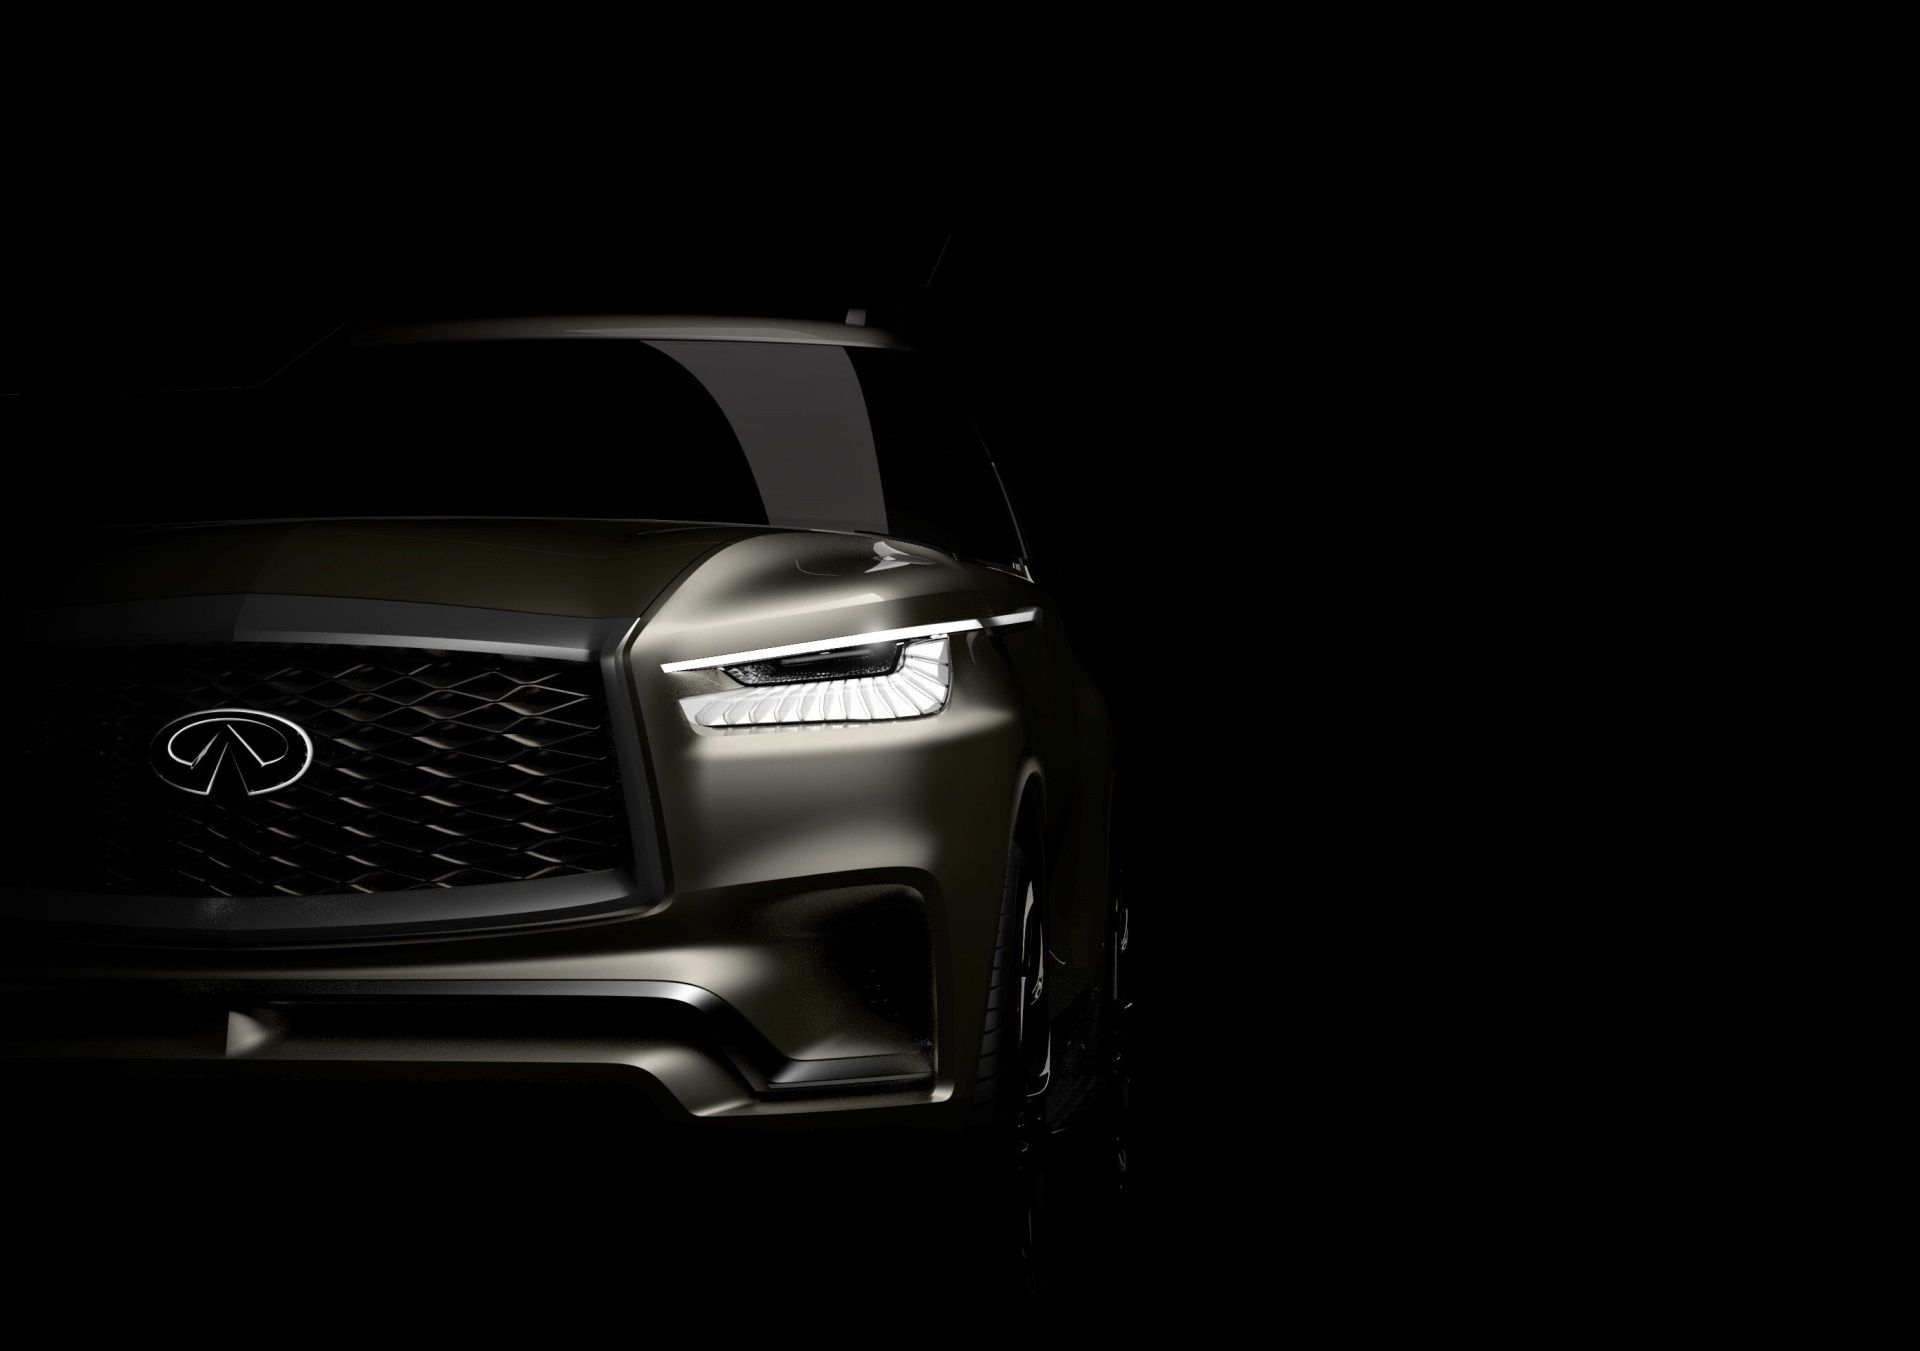 1920x1351 Infiniti Qx80 Monograph Wallpaper For Desktop Background Free Download